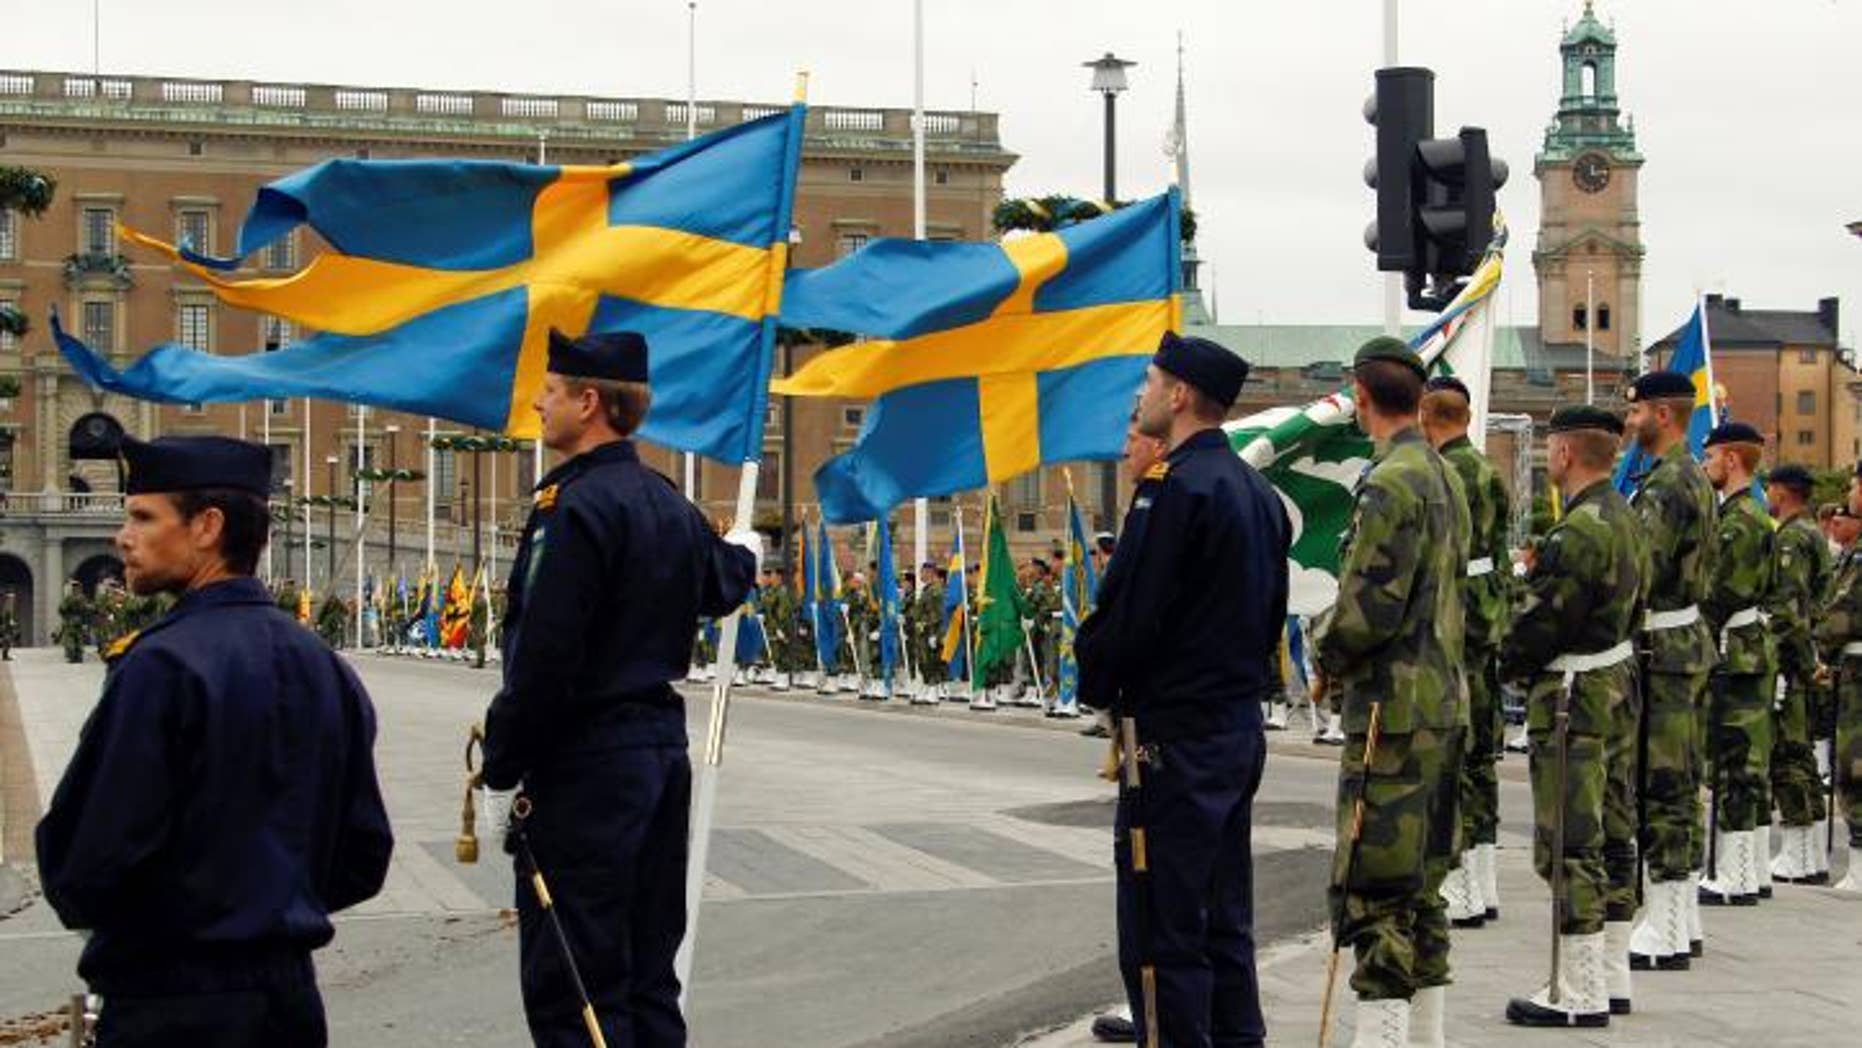 FILE -- June 18, 2010: Swedish armed forces soldiers attend a rehearsal in front of the Royal Palace in Stockholm, Sweden.